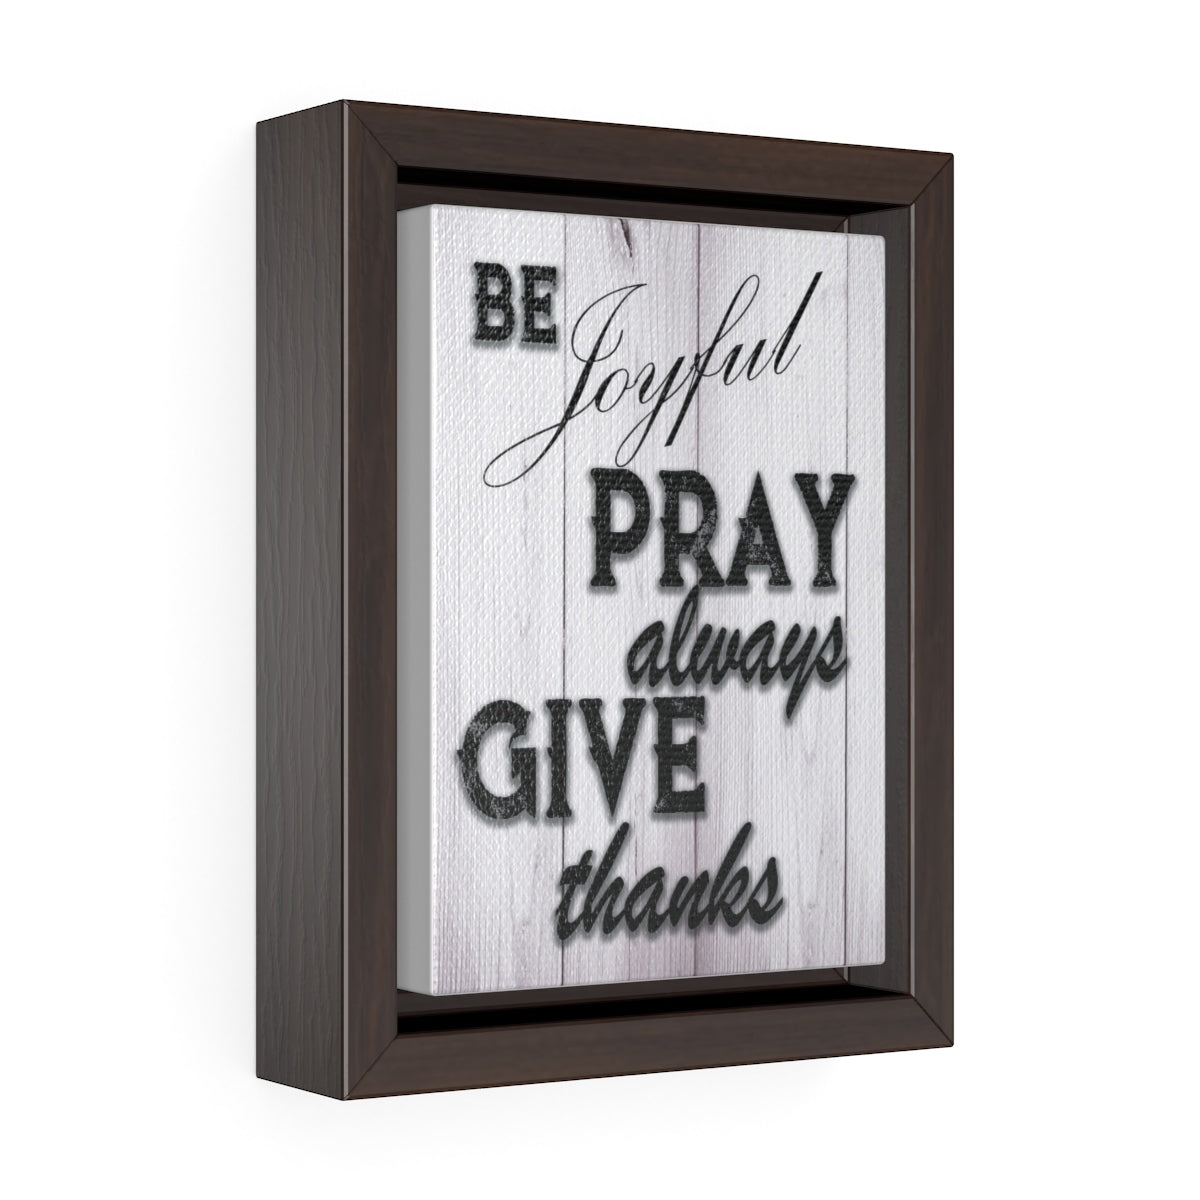 Be Joyful Pray Always Give Thanks Wrap Canvas